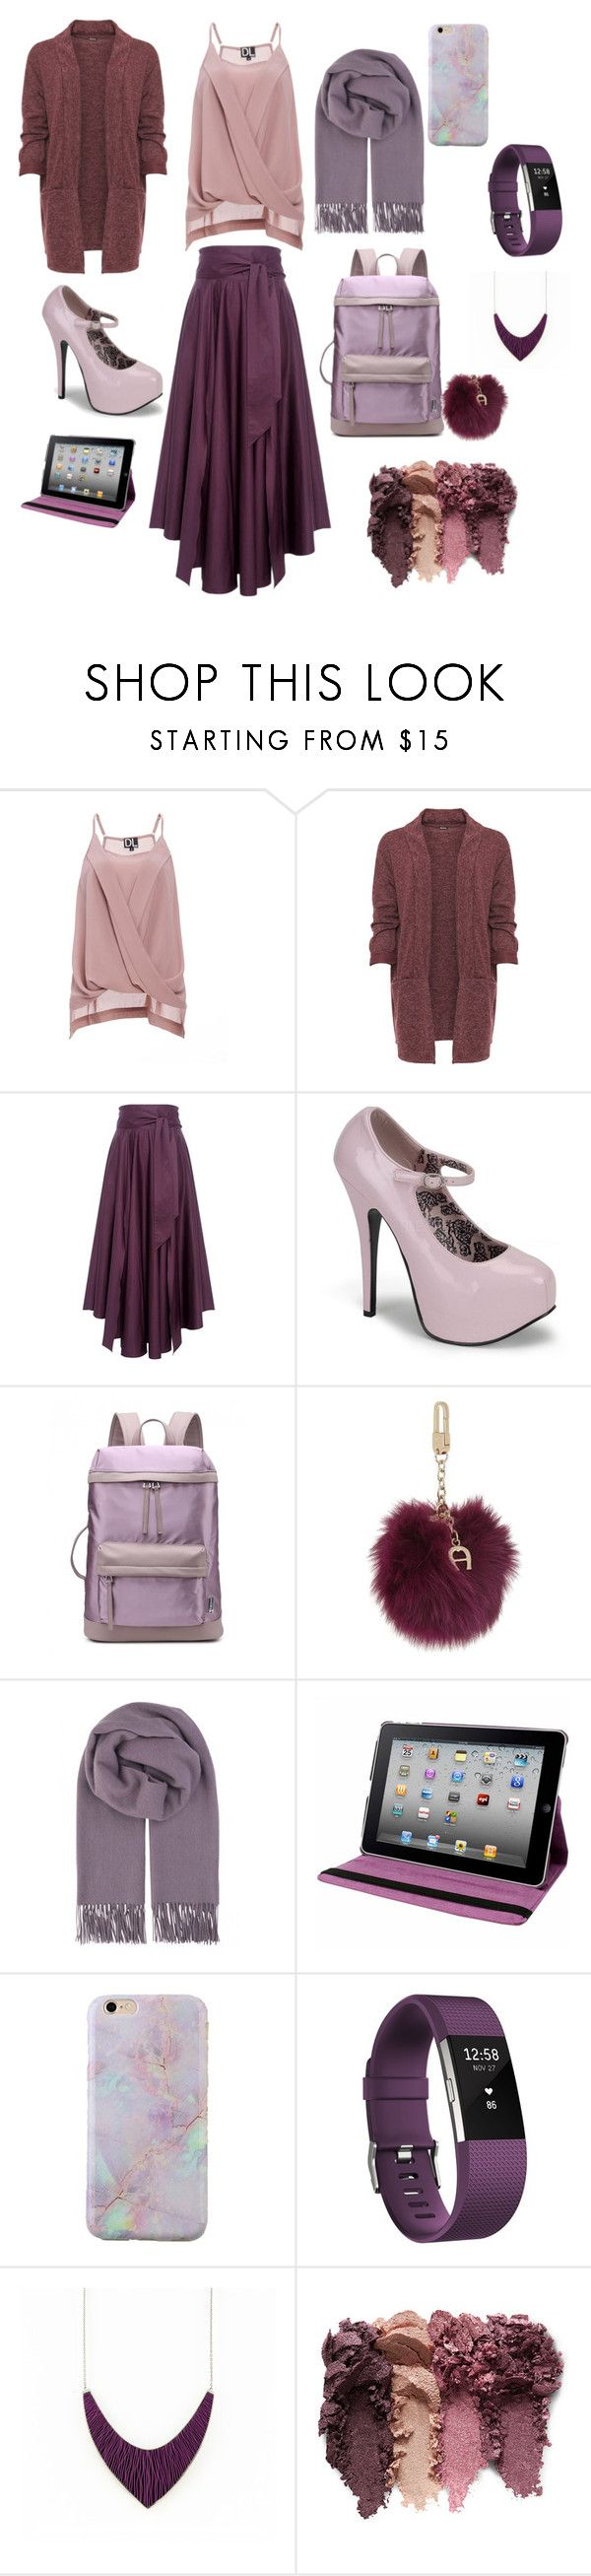 """Untitled #22"" by fitri-navilah ❤ liked on Polyvore featuring beauty, WearAll, TIBI, Etienne Aigner, BeckSöndergaard, Natico, Fitbit and plus size clothing"